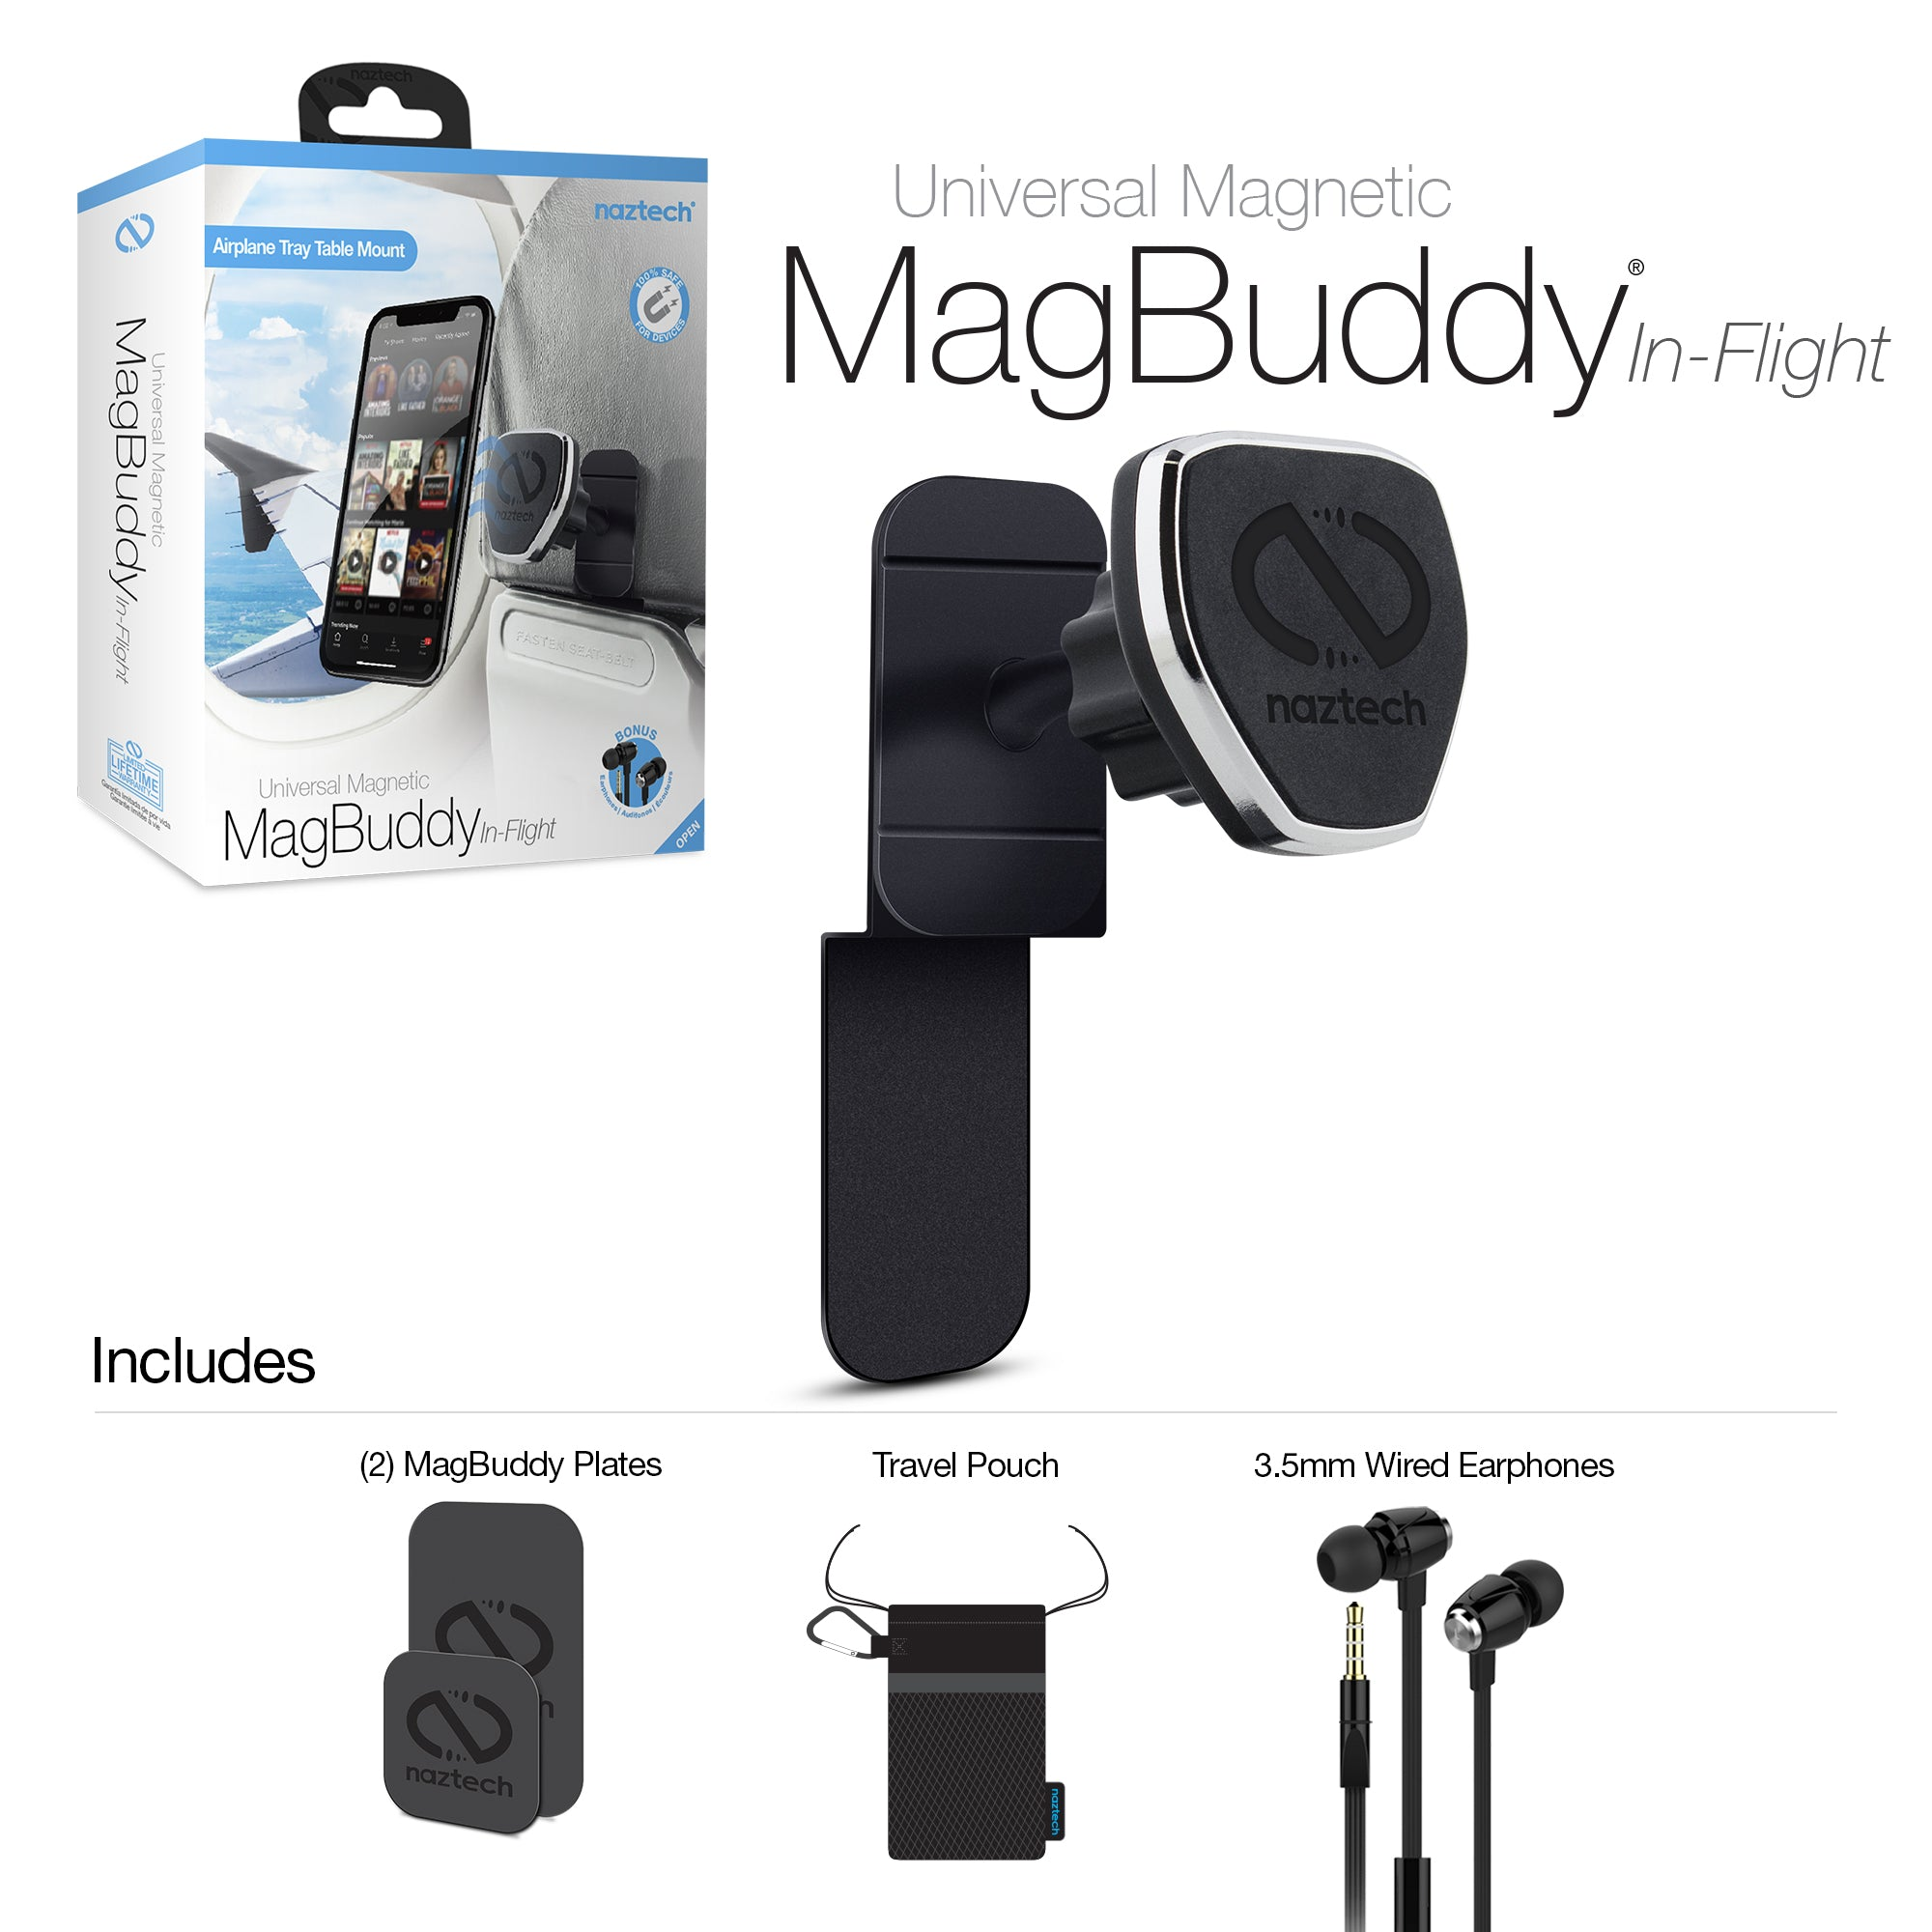 MagBuddy In-Flight